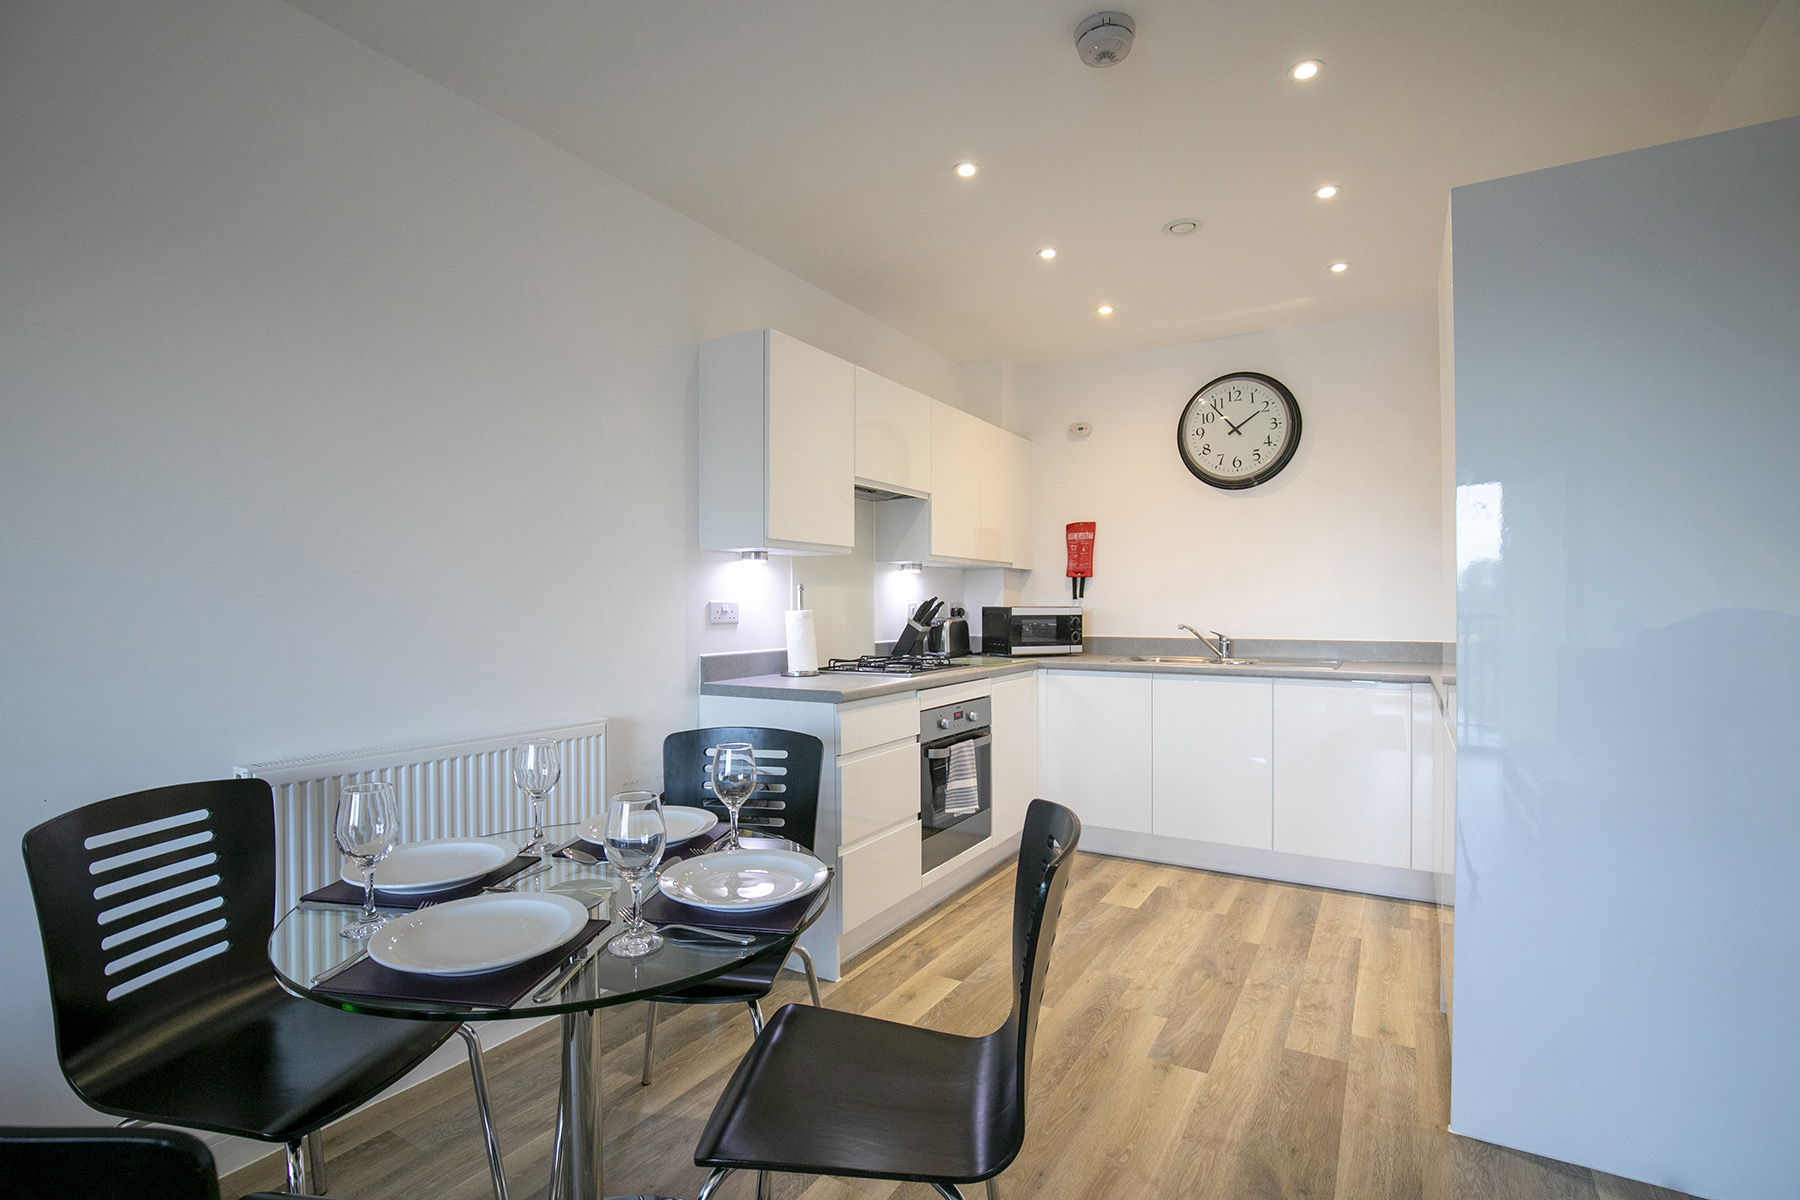 Dining area at Wey Corner Apartment, Centre, Guildford - Citybase Apartments